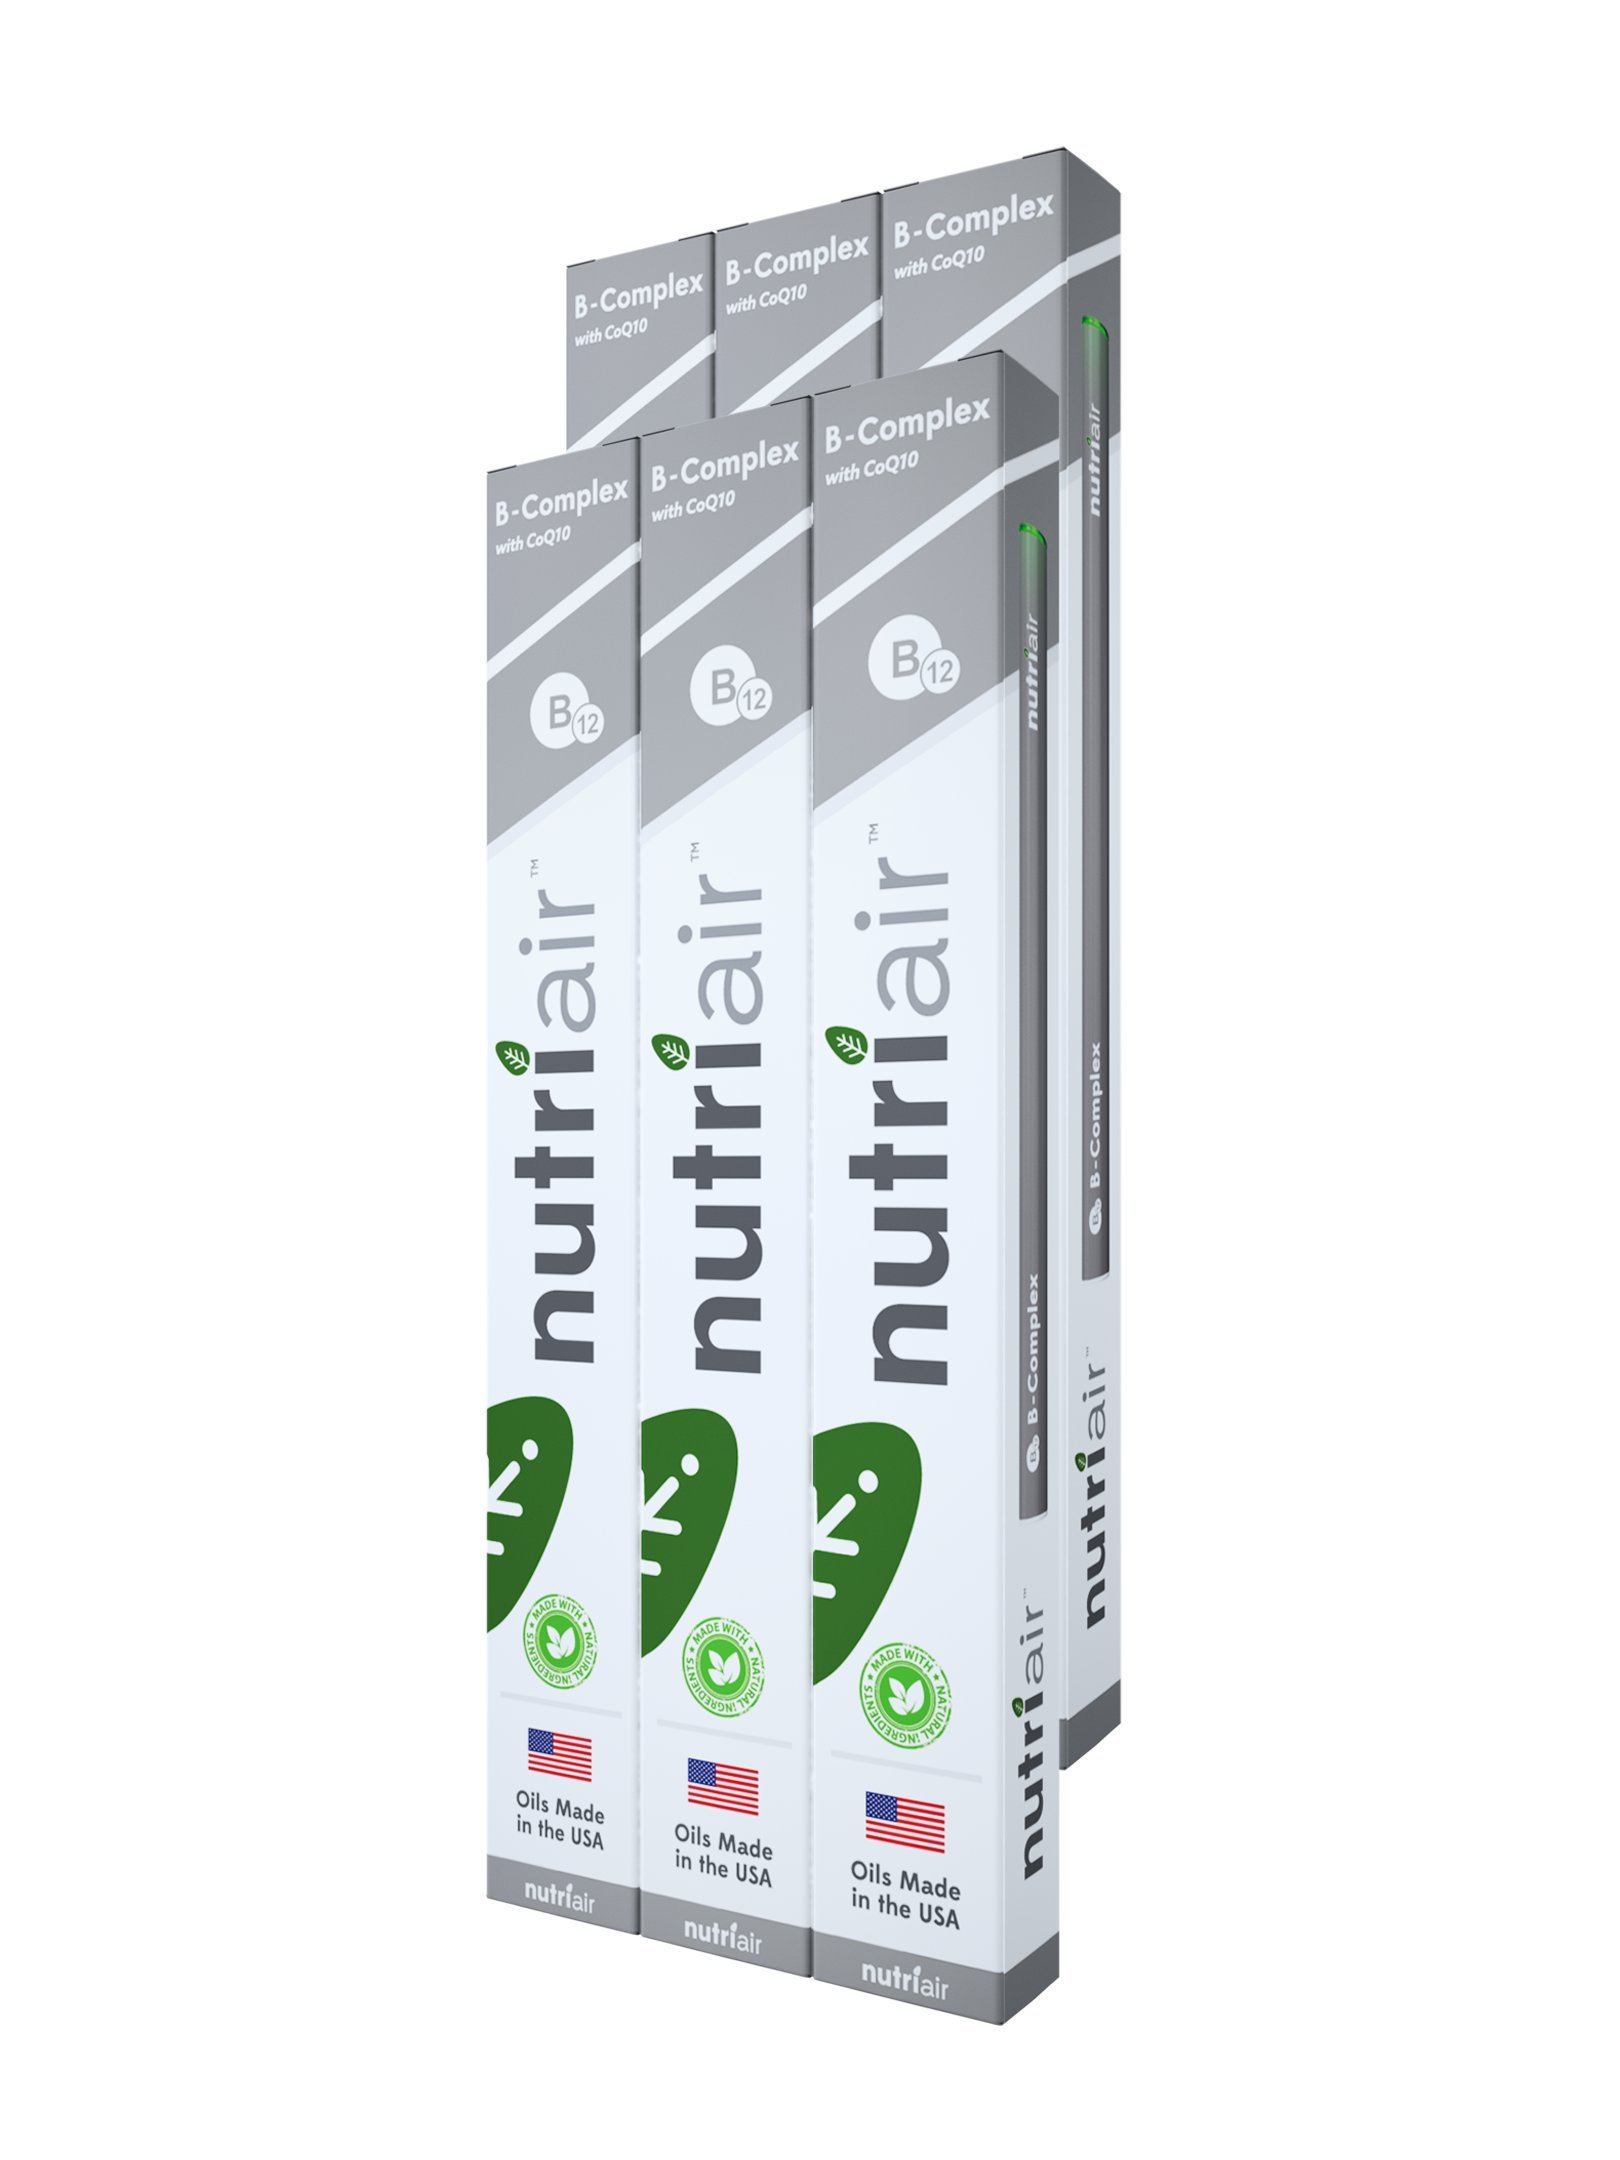 Nutriair B-Complex B12 Inhaler - Nutritional Aromatherapy Pen with CoQ10 - Essential B Vitamin/Energy Supplement - B12, B6, B2, B1 - Nicotine Free, Great Tasting Flavor with NO Calories - (6 Pack)